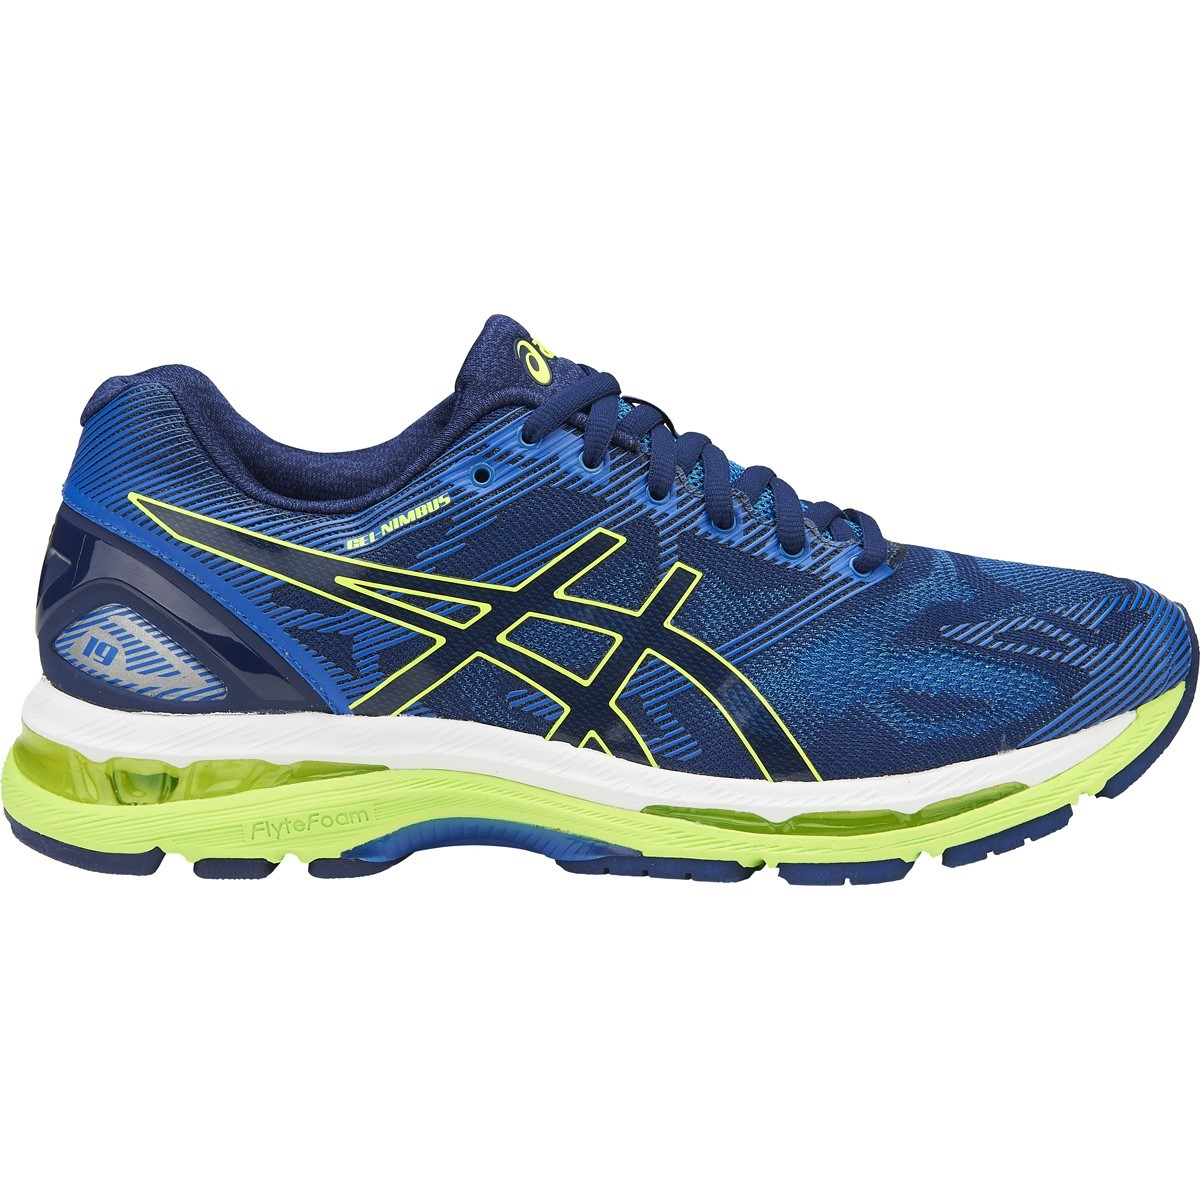 asics gel nimbus 19 mens running shoes indigo blue safety yellow electric blue online. Black Bedroom Furniture Sets. Home Design Ideas